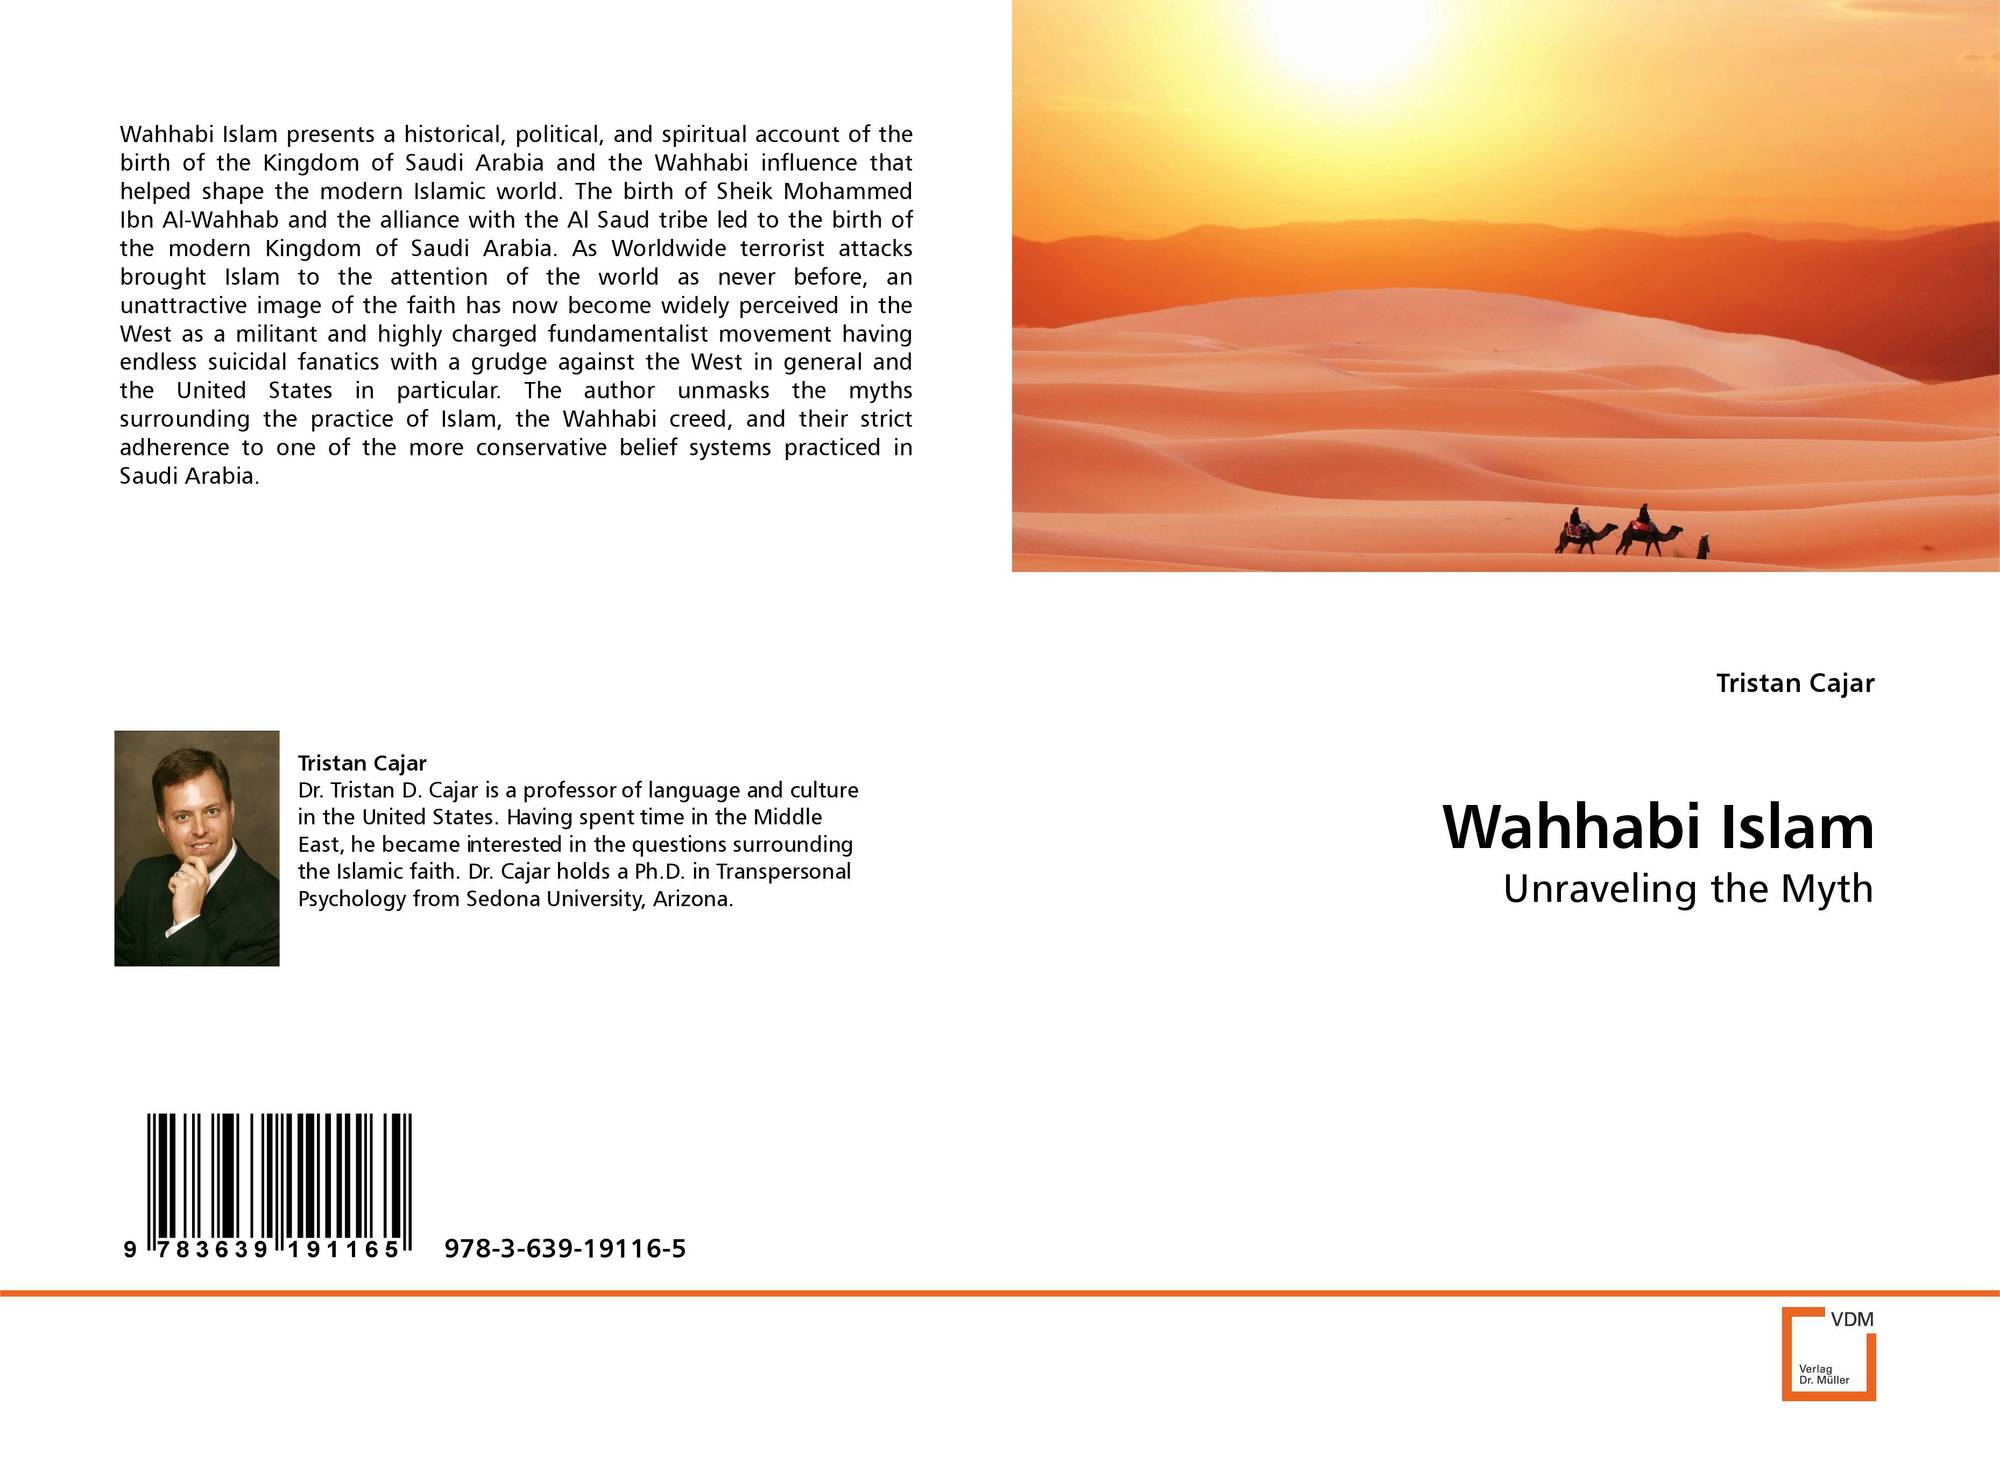 an analysis of the causes of the growth in popularity of islam Shia an analysis of mass media as the cause of violence in the society ismaili, shia islam, ismaili, his highness the aga khan, allah, prophet a literary analysis of russian revolution in animal farm by george orwell muhammad, abi.